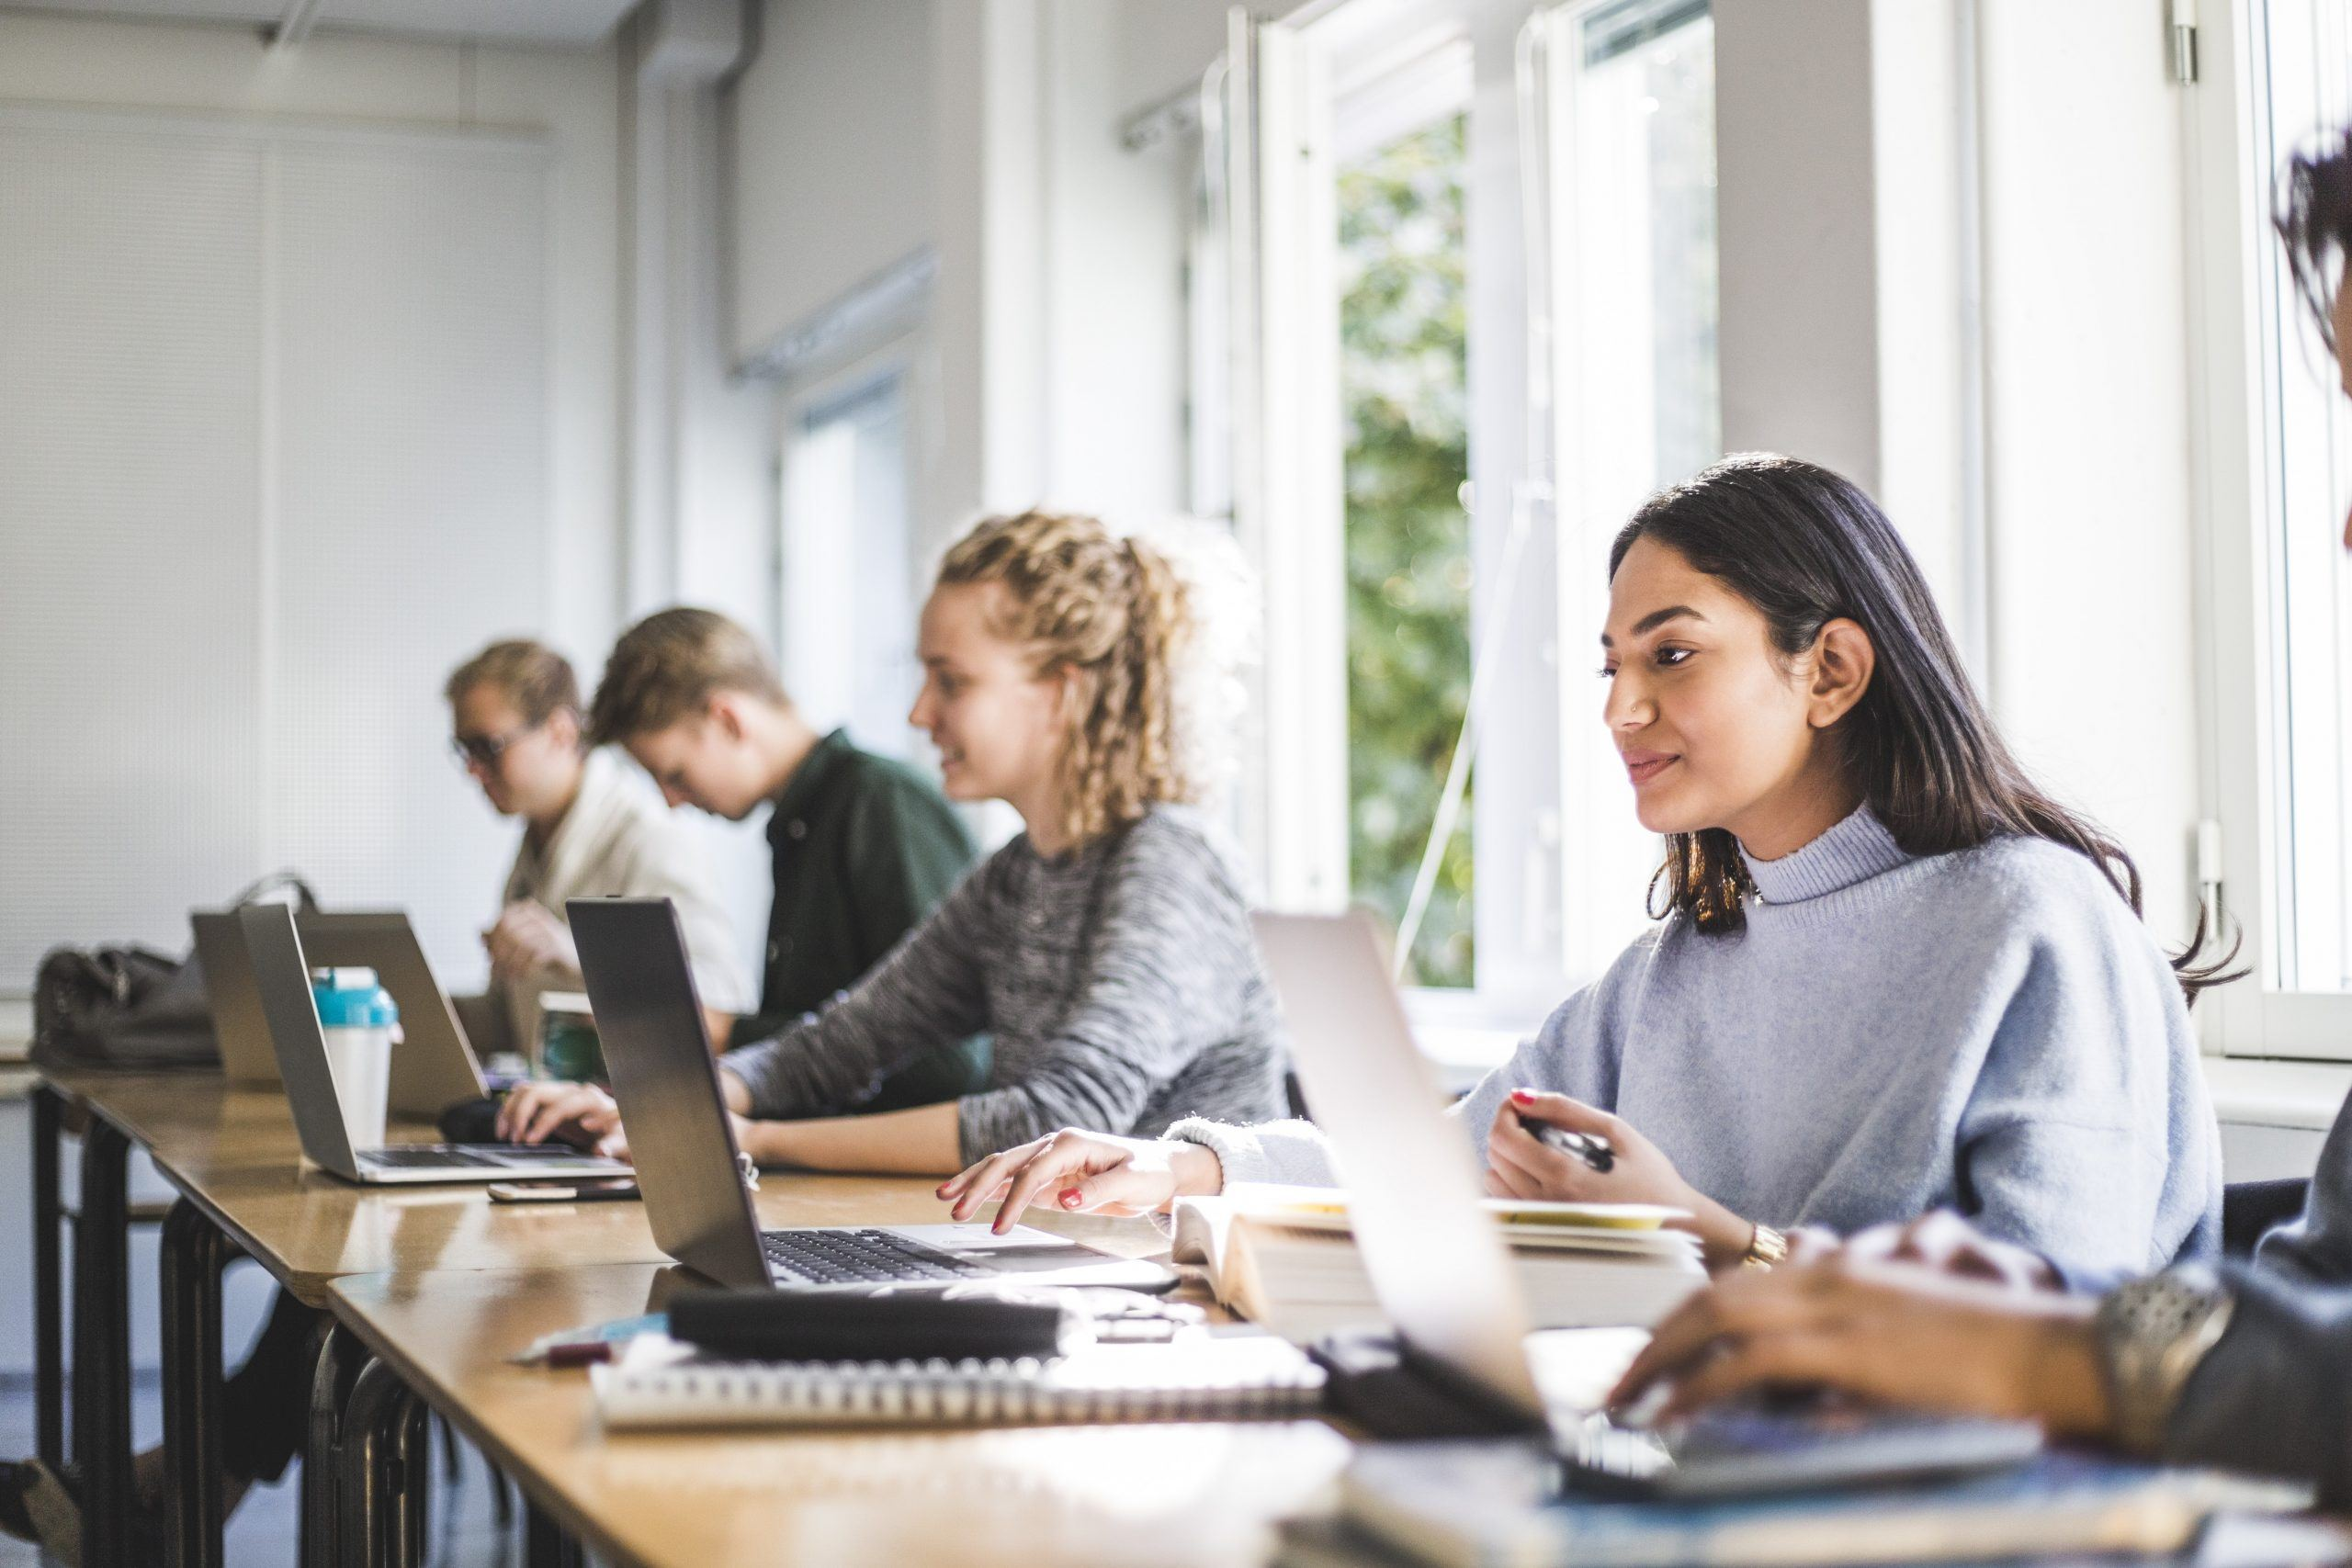 Male and female students using laptops in classroom